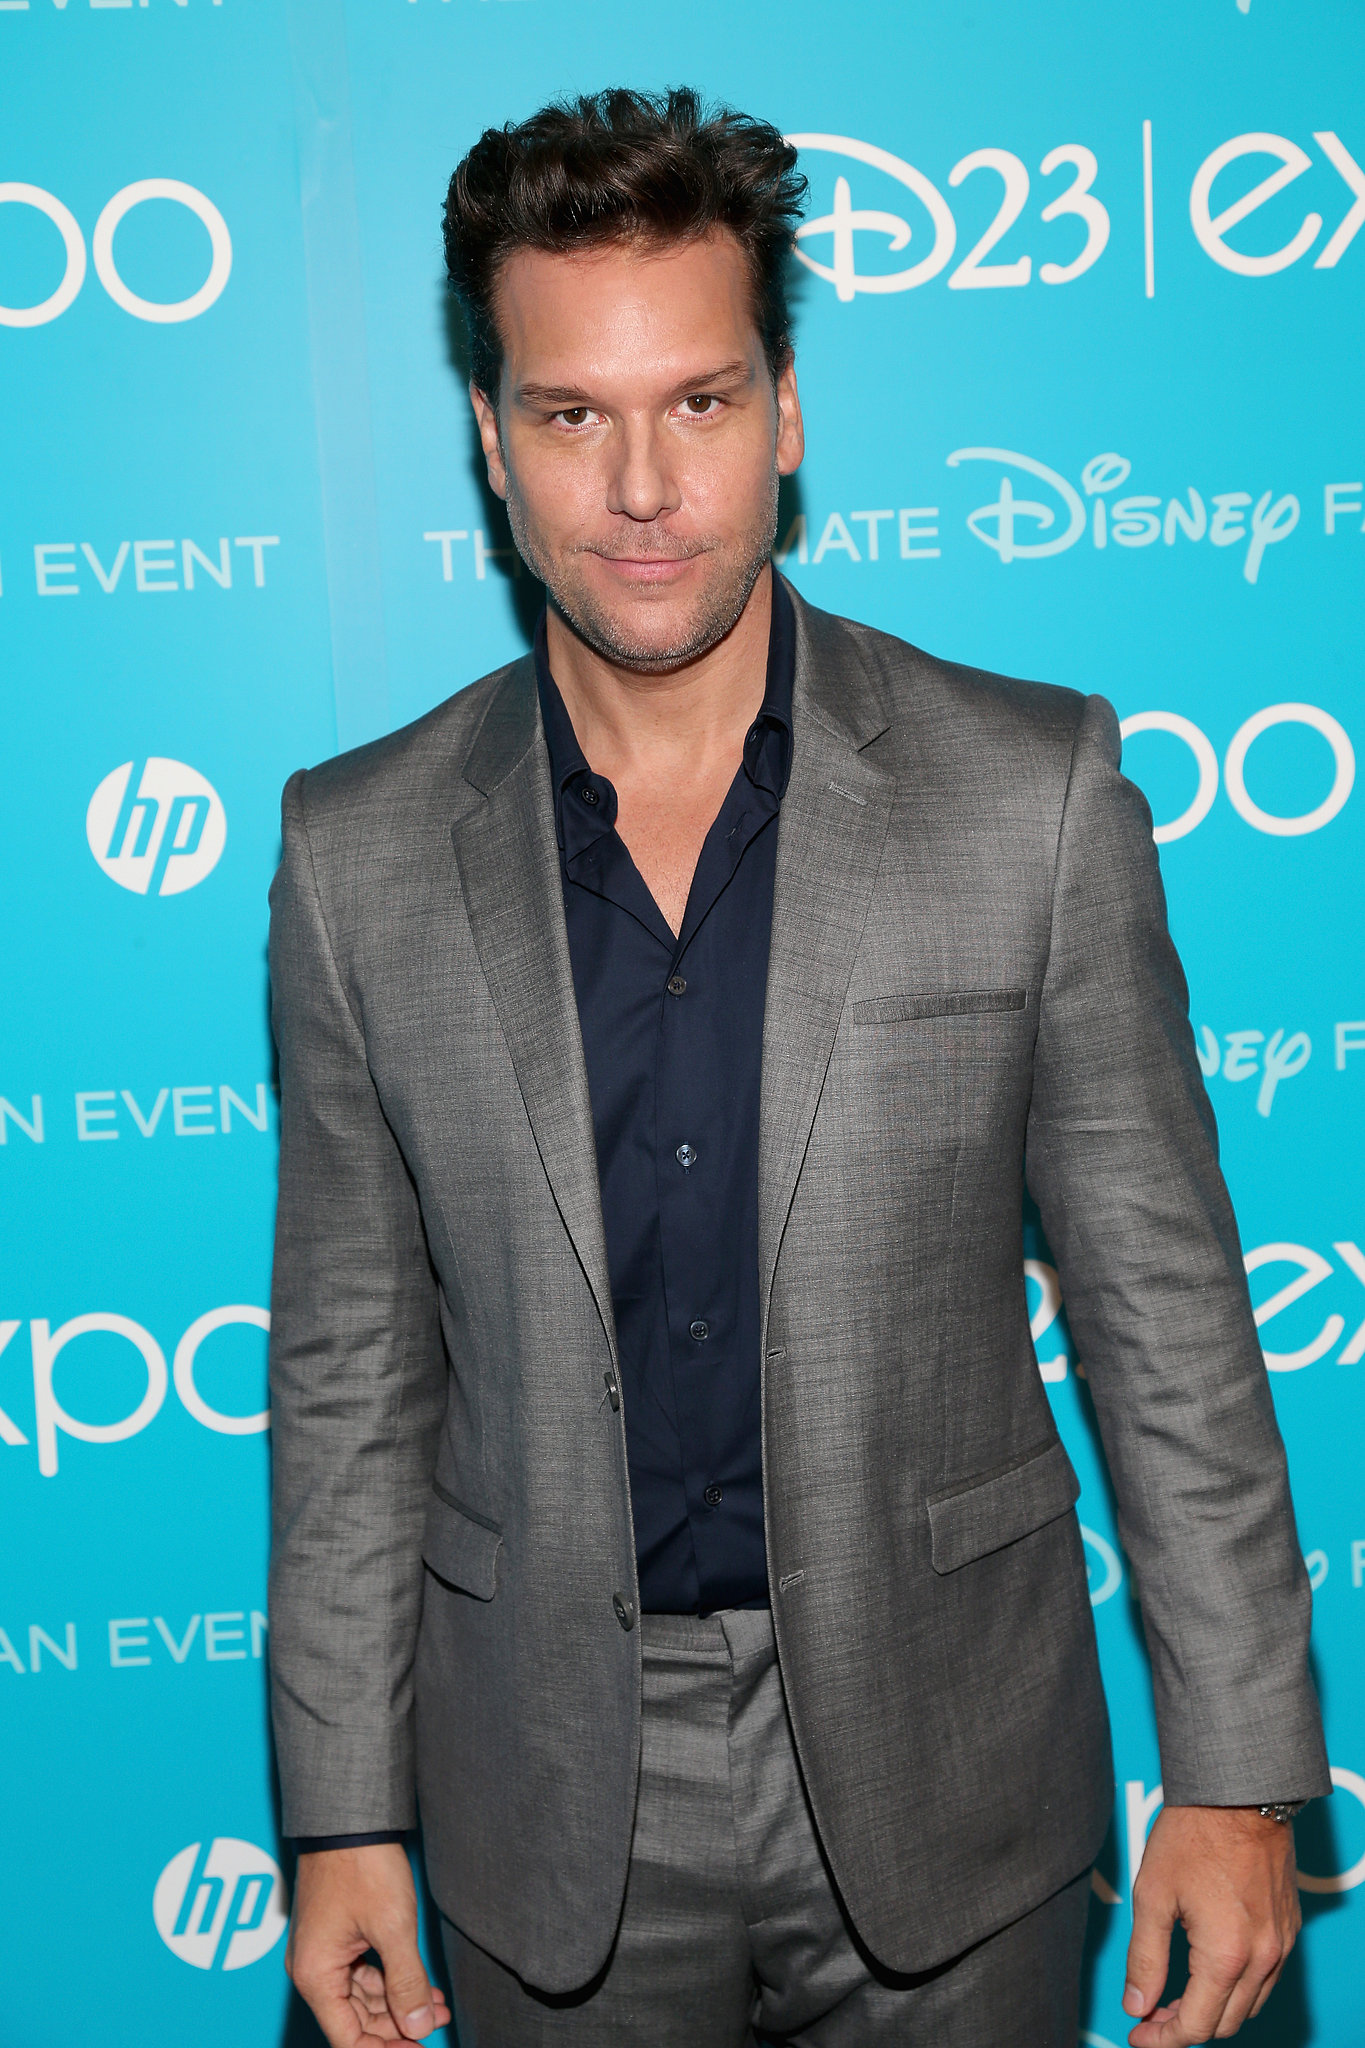 Comedian Dane Cook attended Disney's D23 Expo in LA on Saturday.